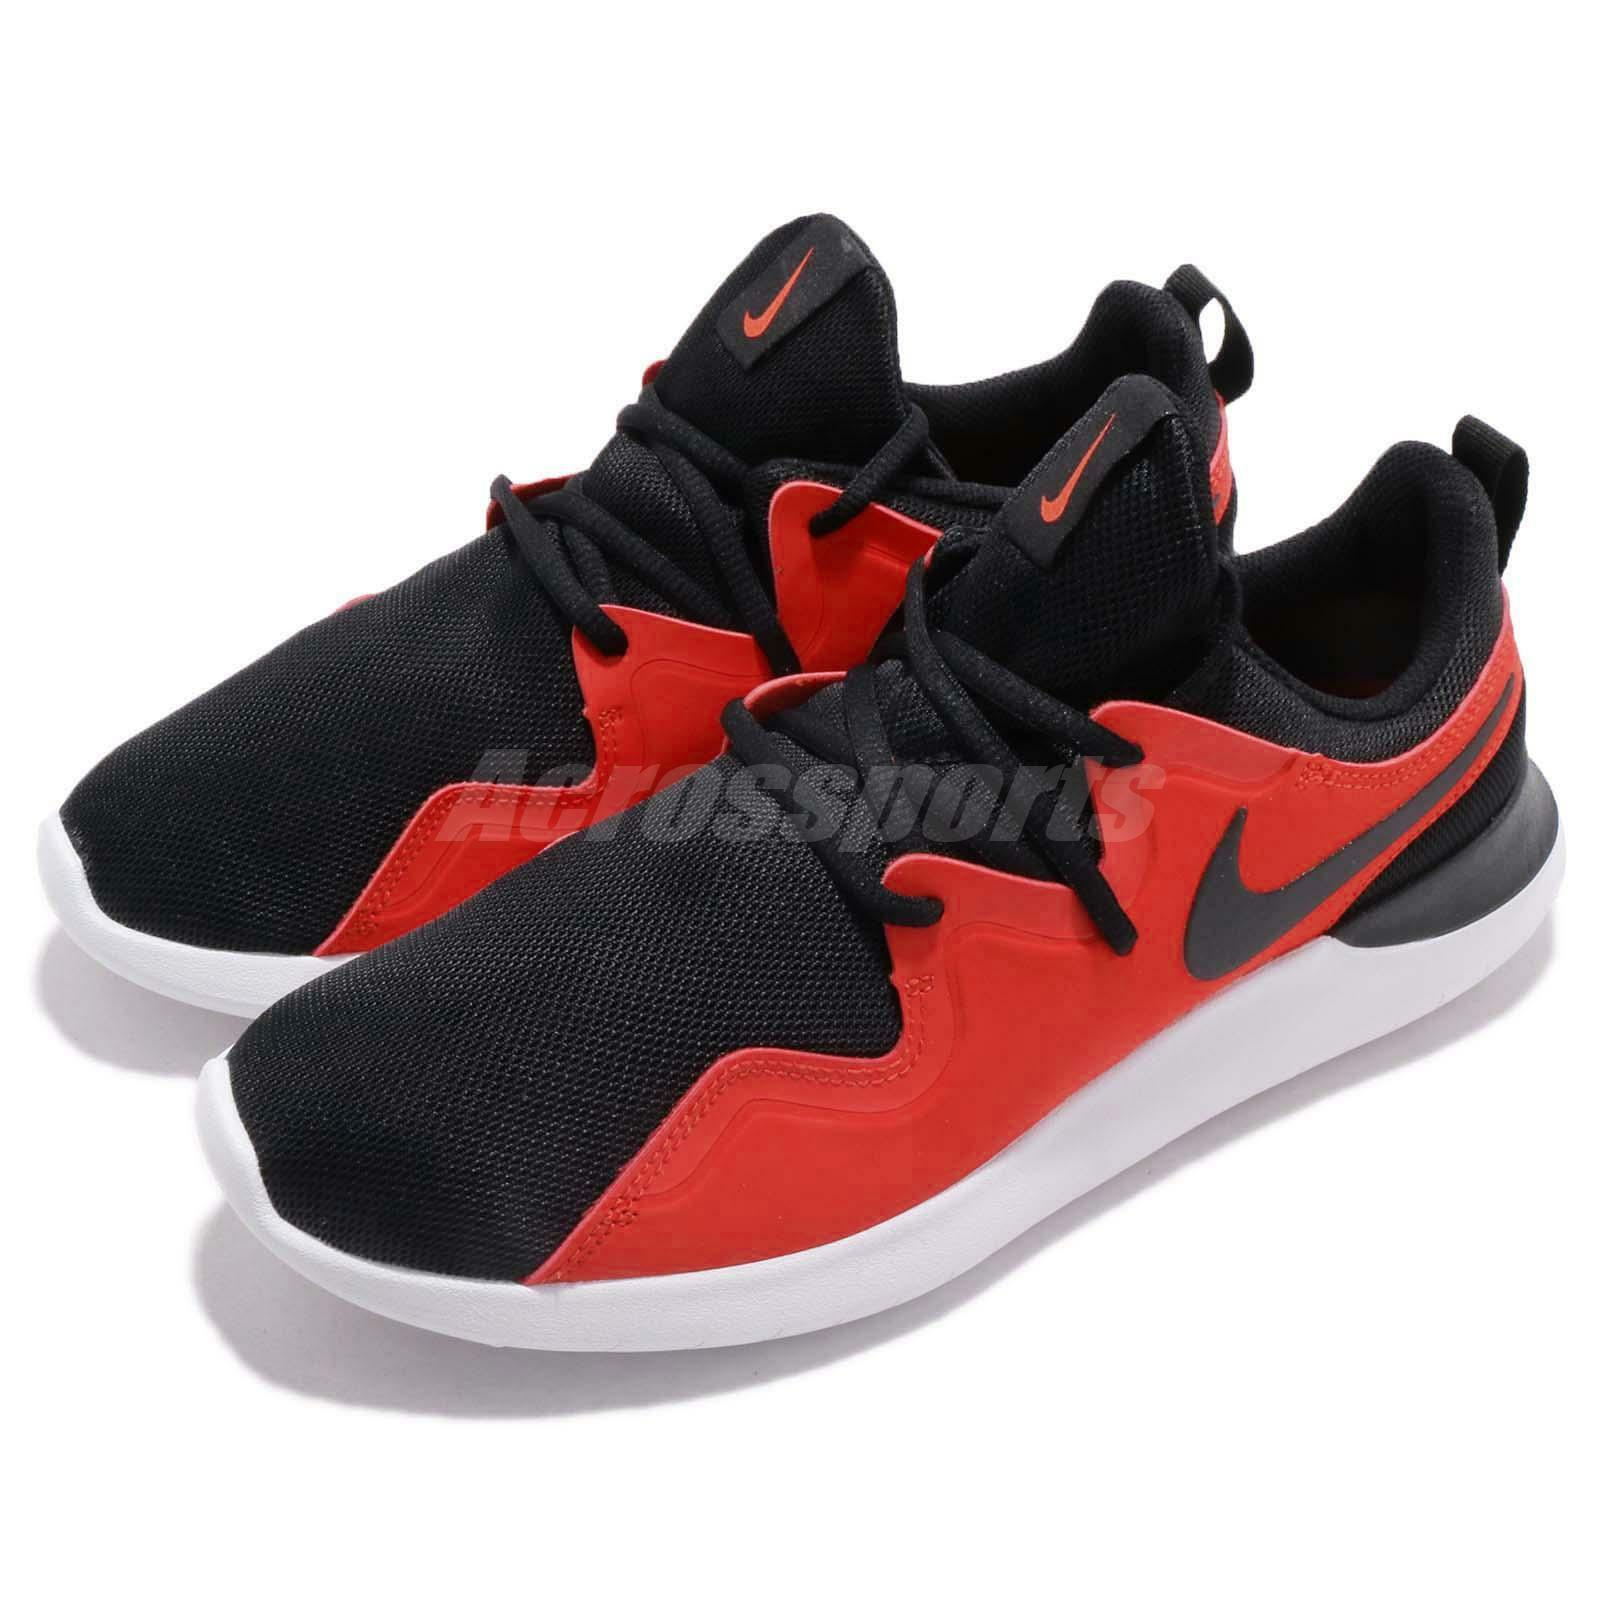 Nike Tessen Black Habablack Habablack Habablack Red White Men Running shoes Sneakers AA2160-009 294a91